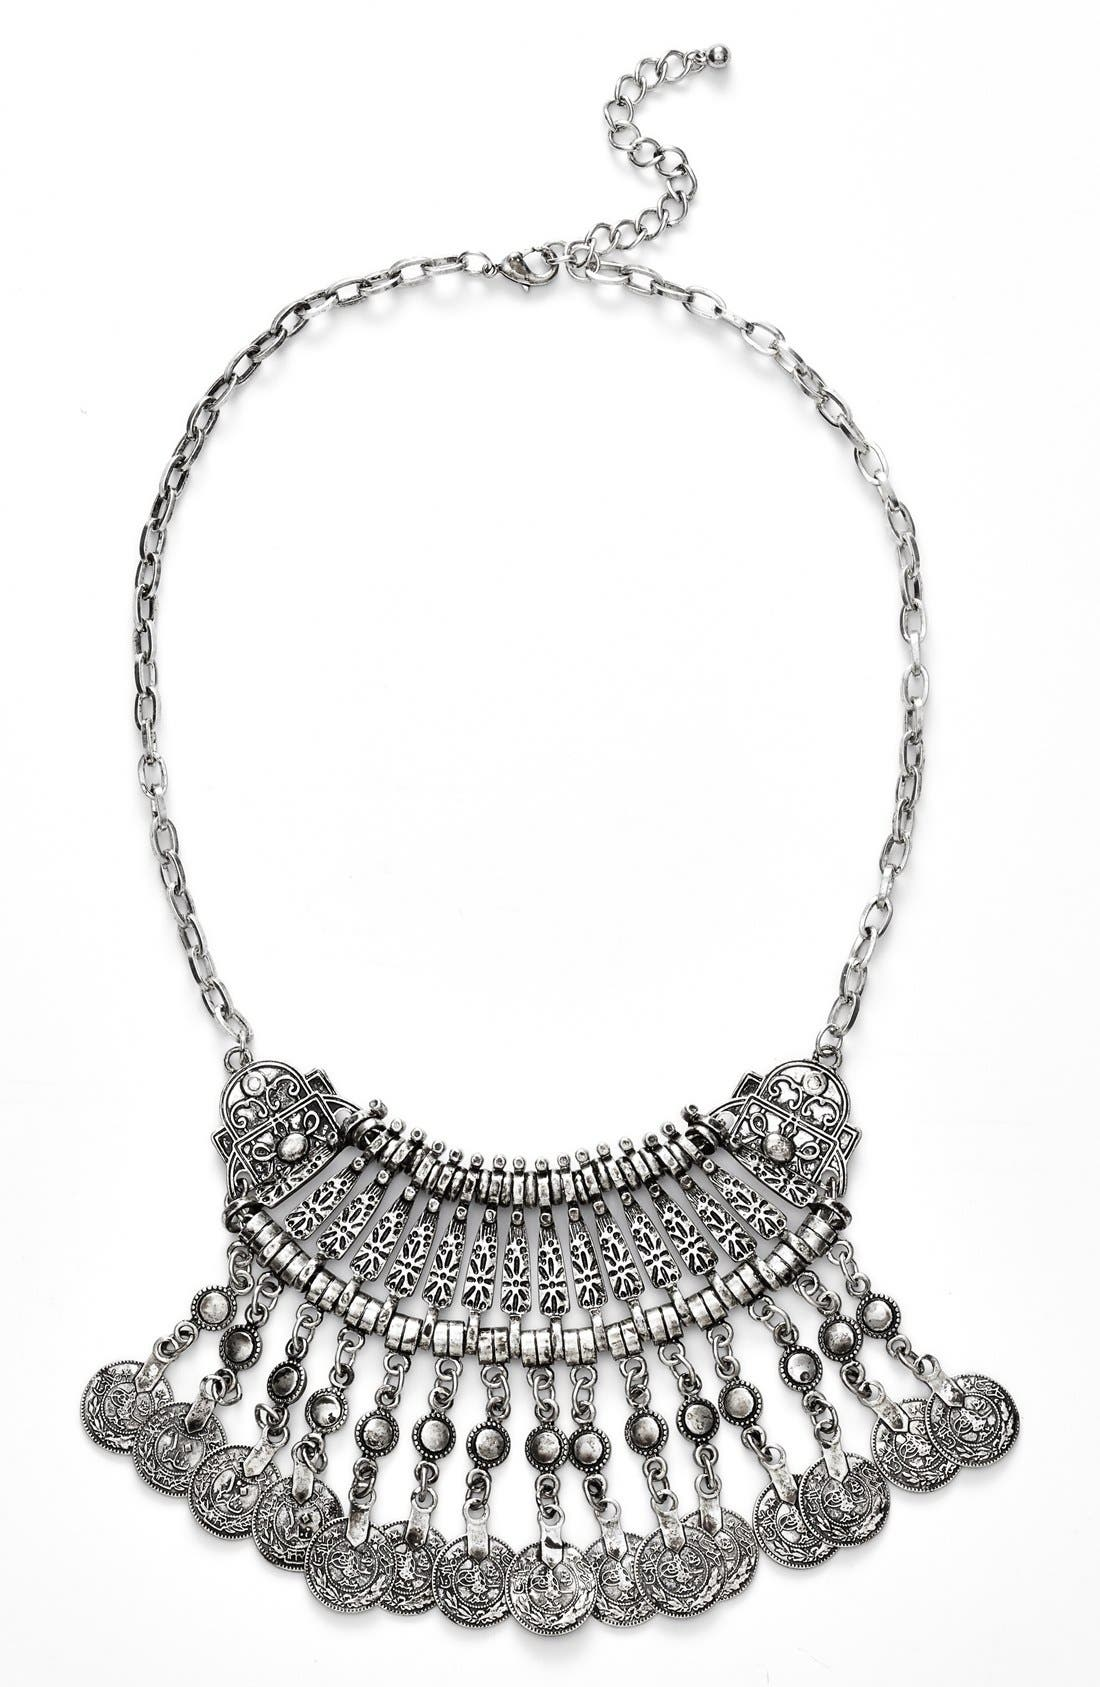 Alternate Image 1 Selected - BP. Etched Coin Statement Necklace